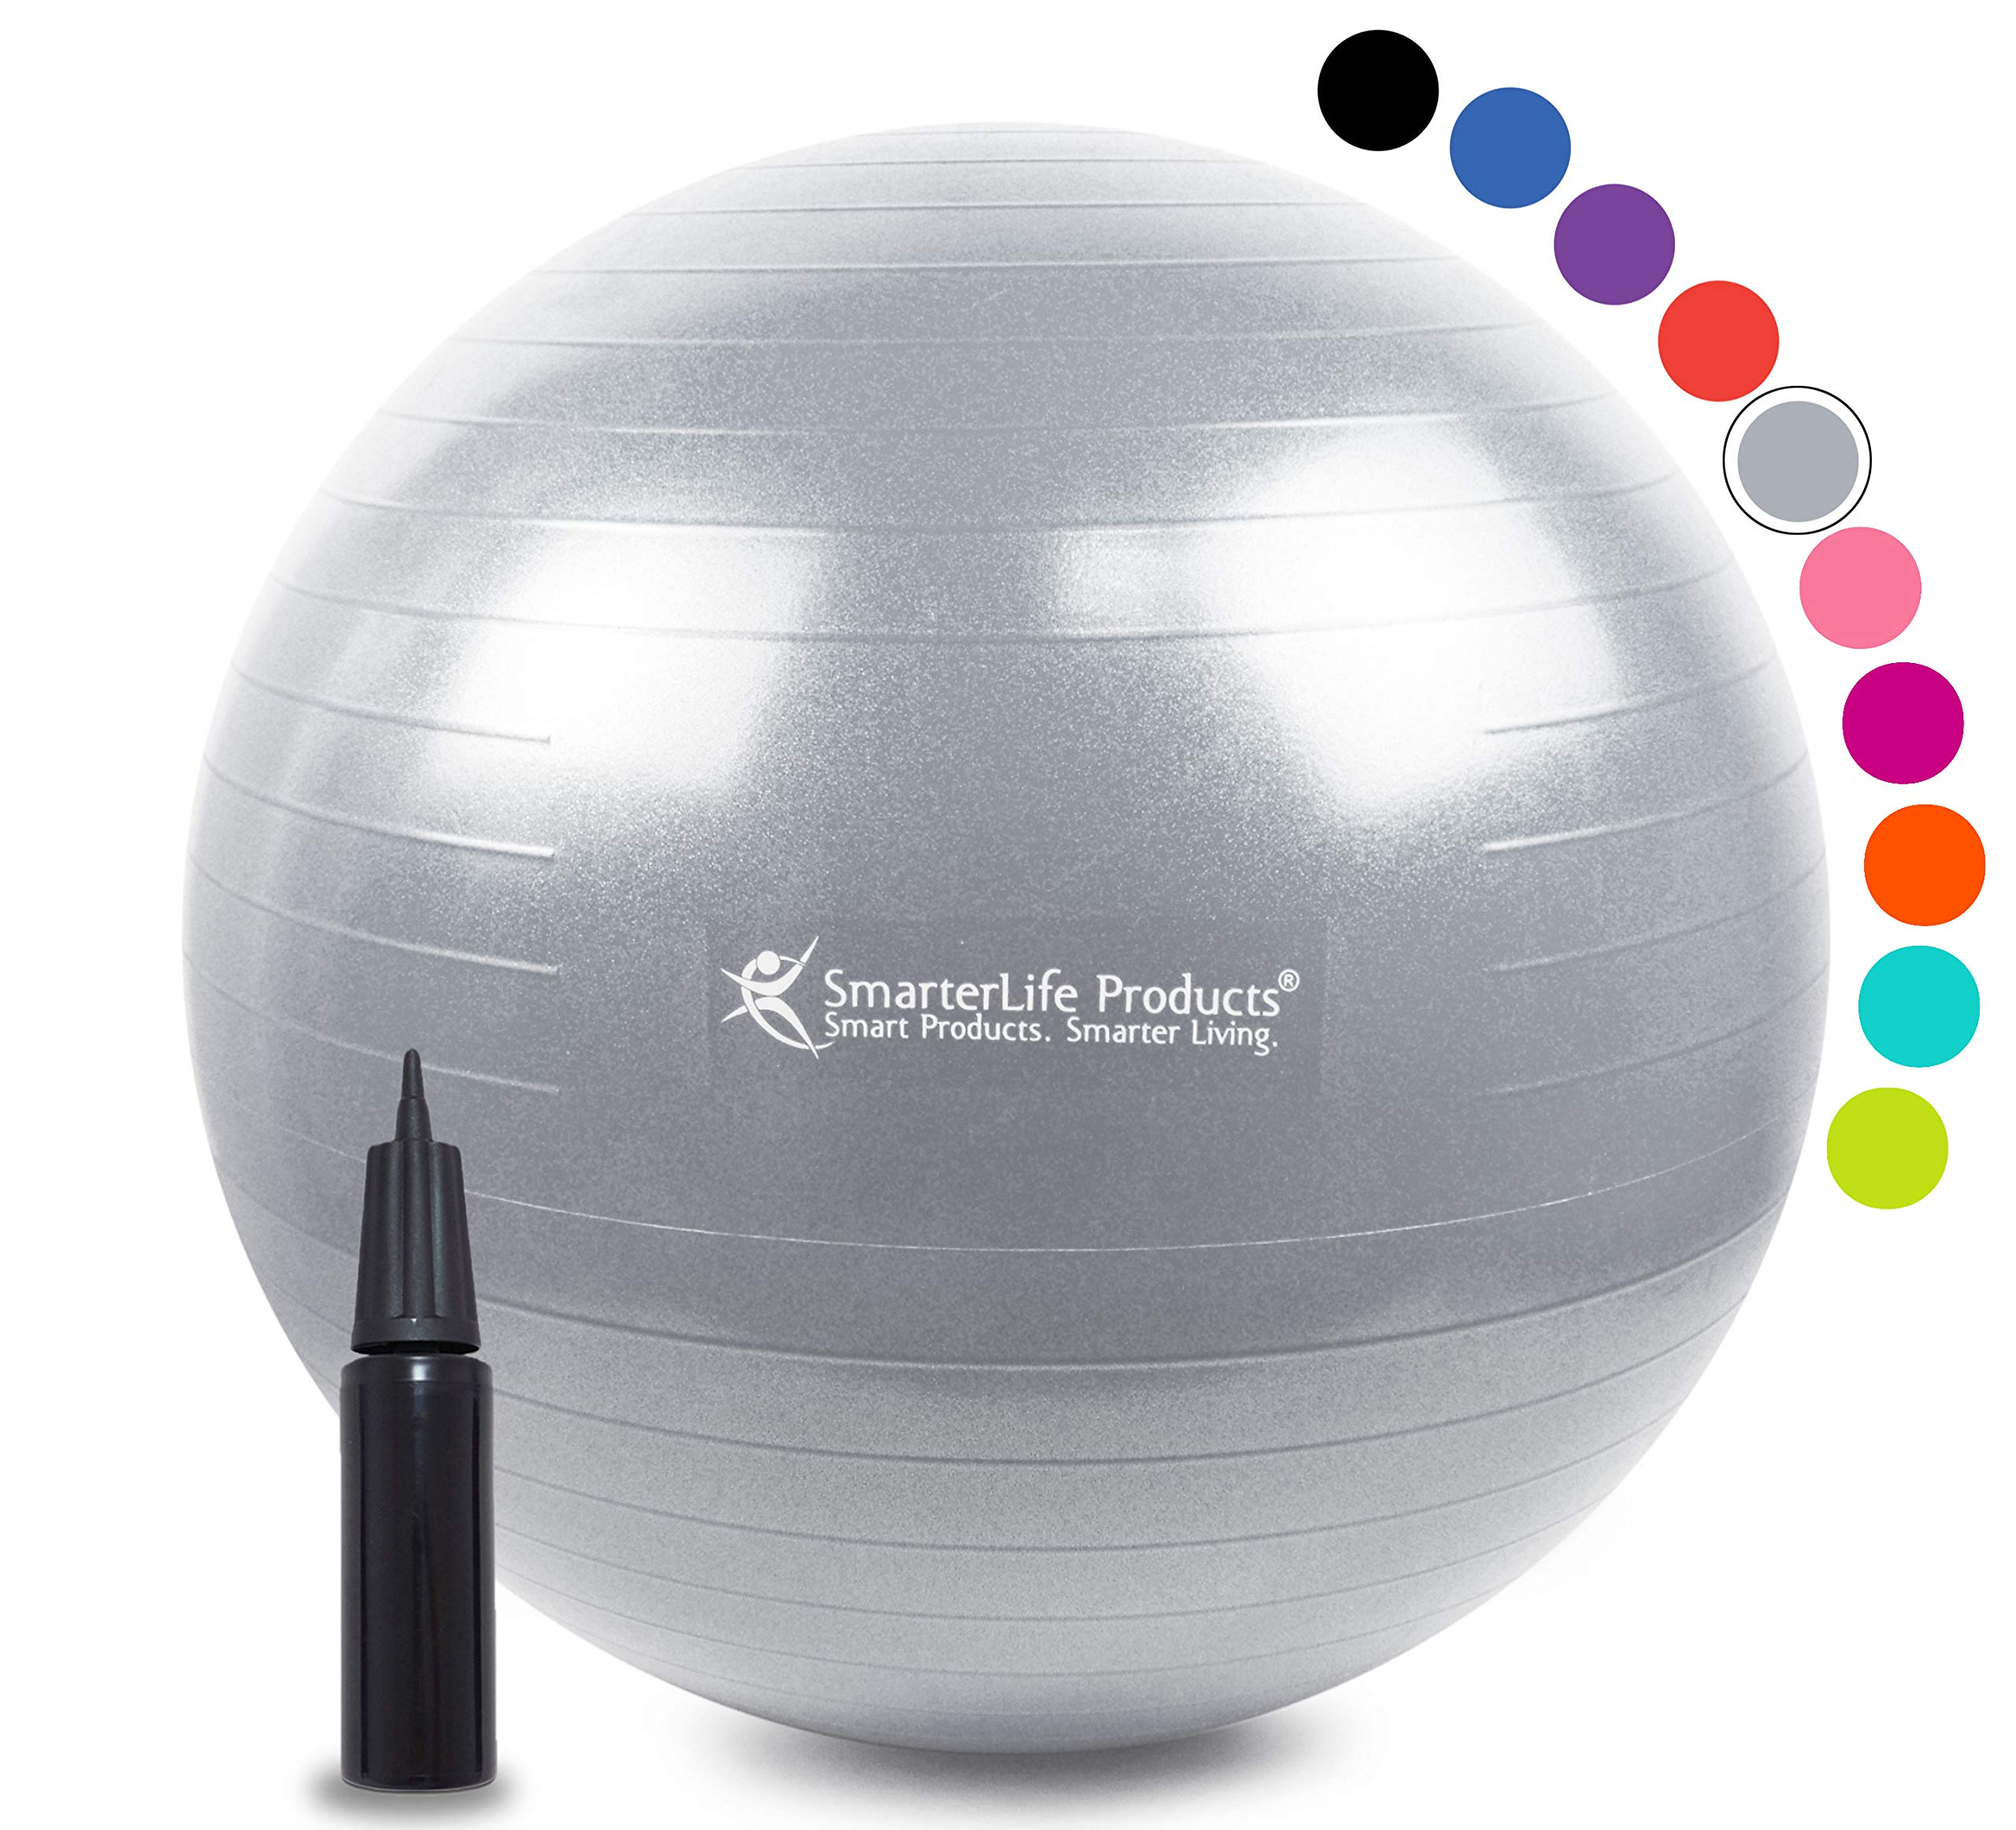 Exercise Ball for Yoga, Balance, Stability from SmarterLife - Fitness, Pilates, Birthing, Therapy, Office Ball Chair, Classroom Flexible Seating - Anti Burst, Non Slip + Workout Guide (Silver, 65cm)